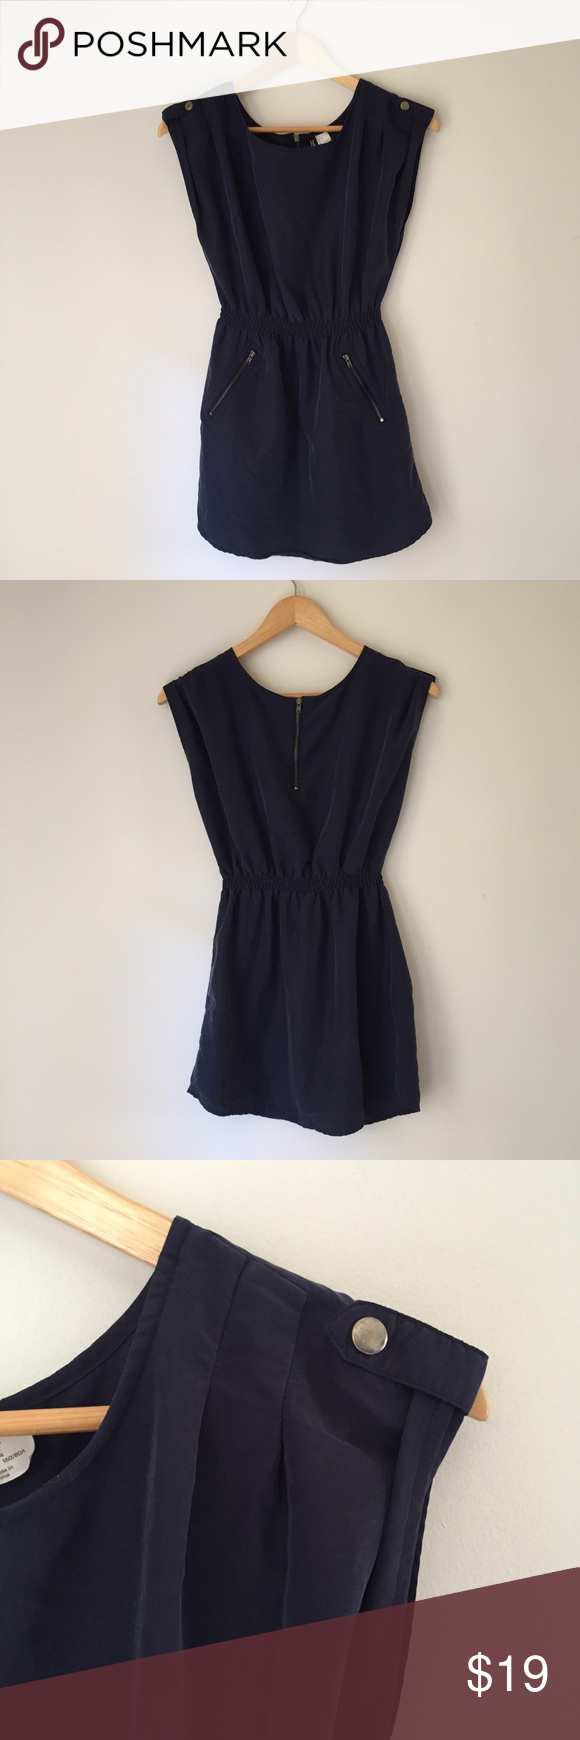 H&M fitted tunic dress H&M fitted tunic dress in navy. Zipper pockets in front, fitted waist and button detail on shoulders. Goes great with tights and boots! Size 4. H&M Dresses Mini